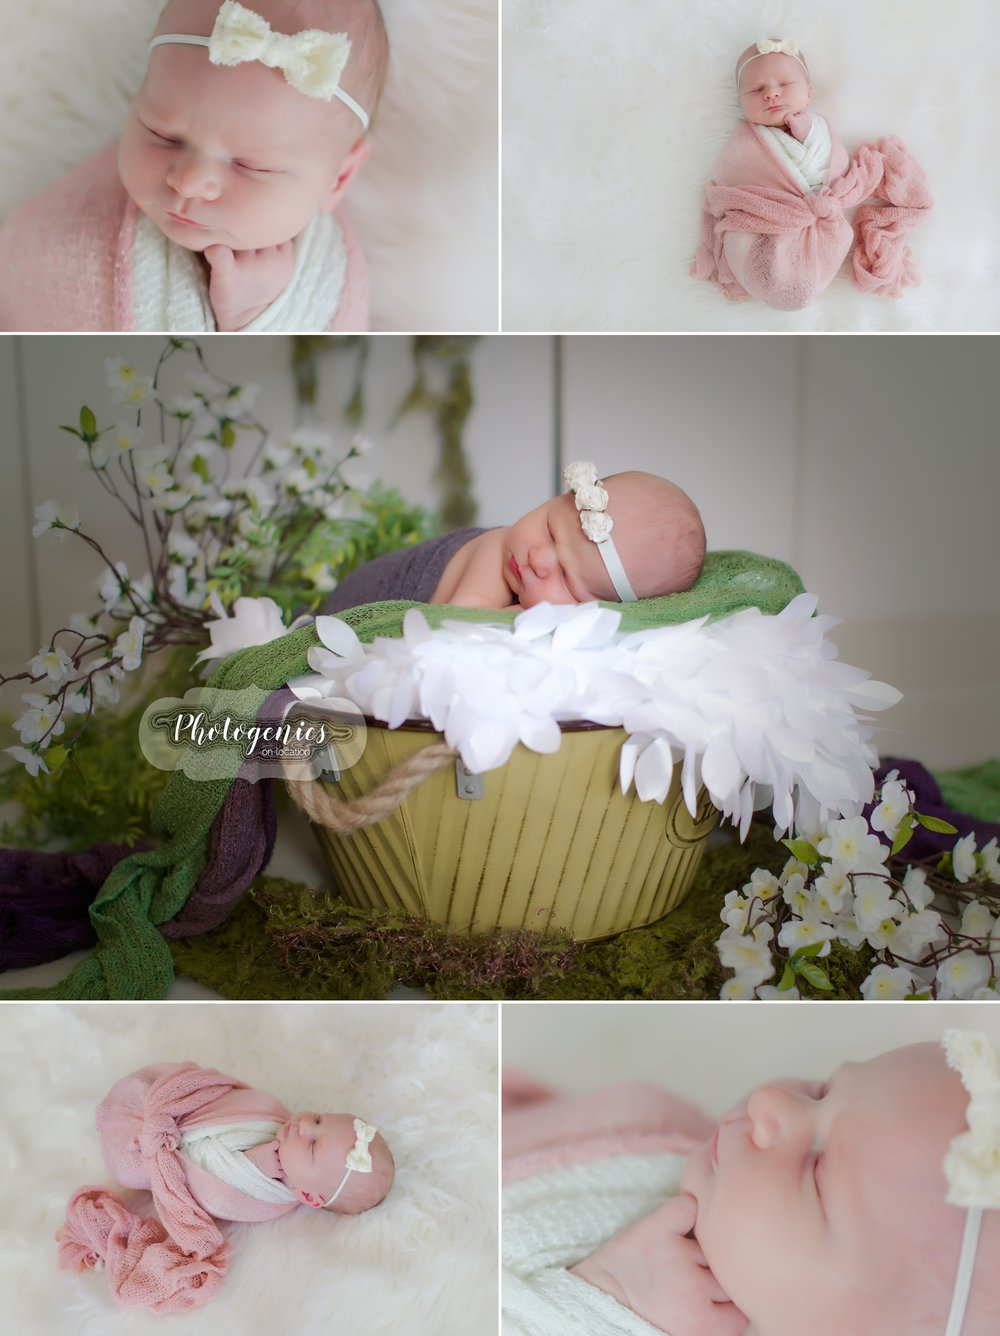 newborn_girl_sibling_photography_family_poses_ideas_props_studio_color_vibrant_unique 1